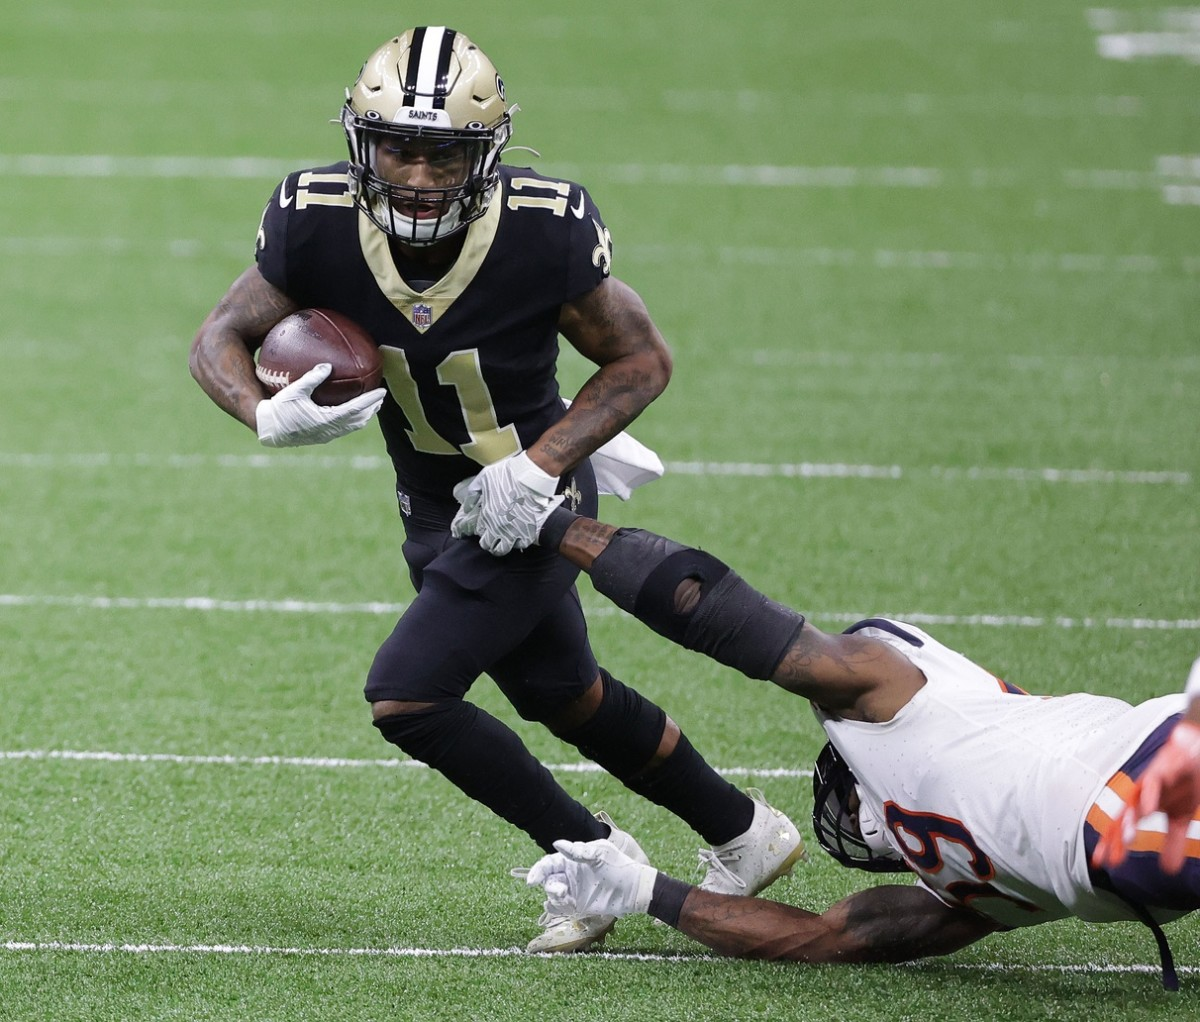 Jan 10, 2021; New Orleans, Louisiana, USA; New Orleans wide receiver Deonte Harris (11) runs the ball against Chicago in the NFC Wild Card game at Mercedes-Benz Superdome. Mandatory Credit: Derick E. Hingle-USA TODAY